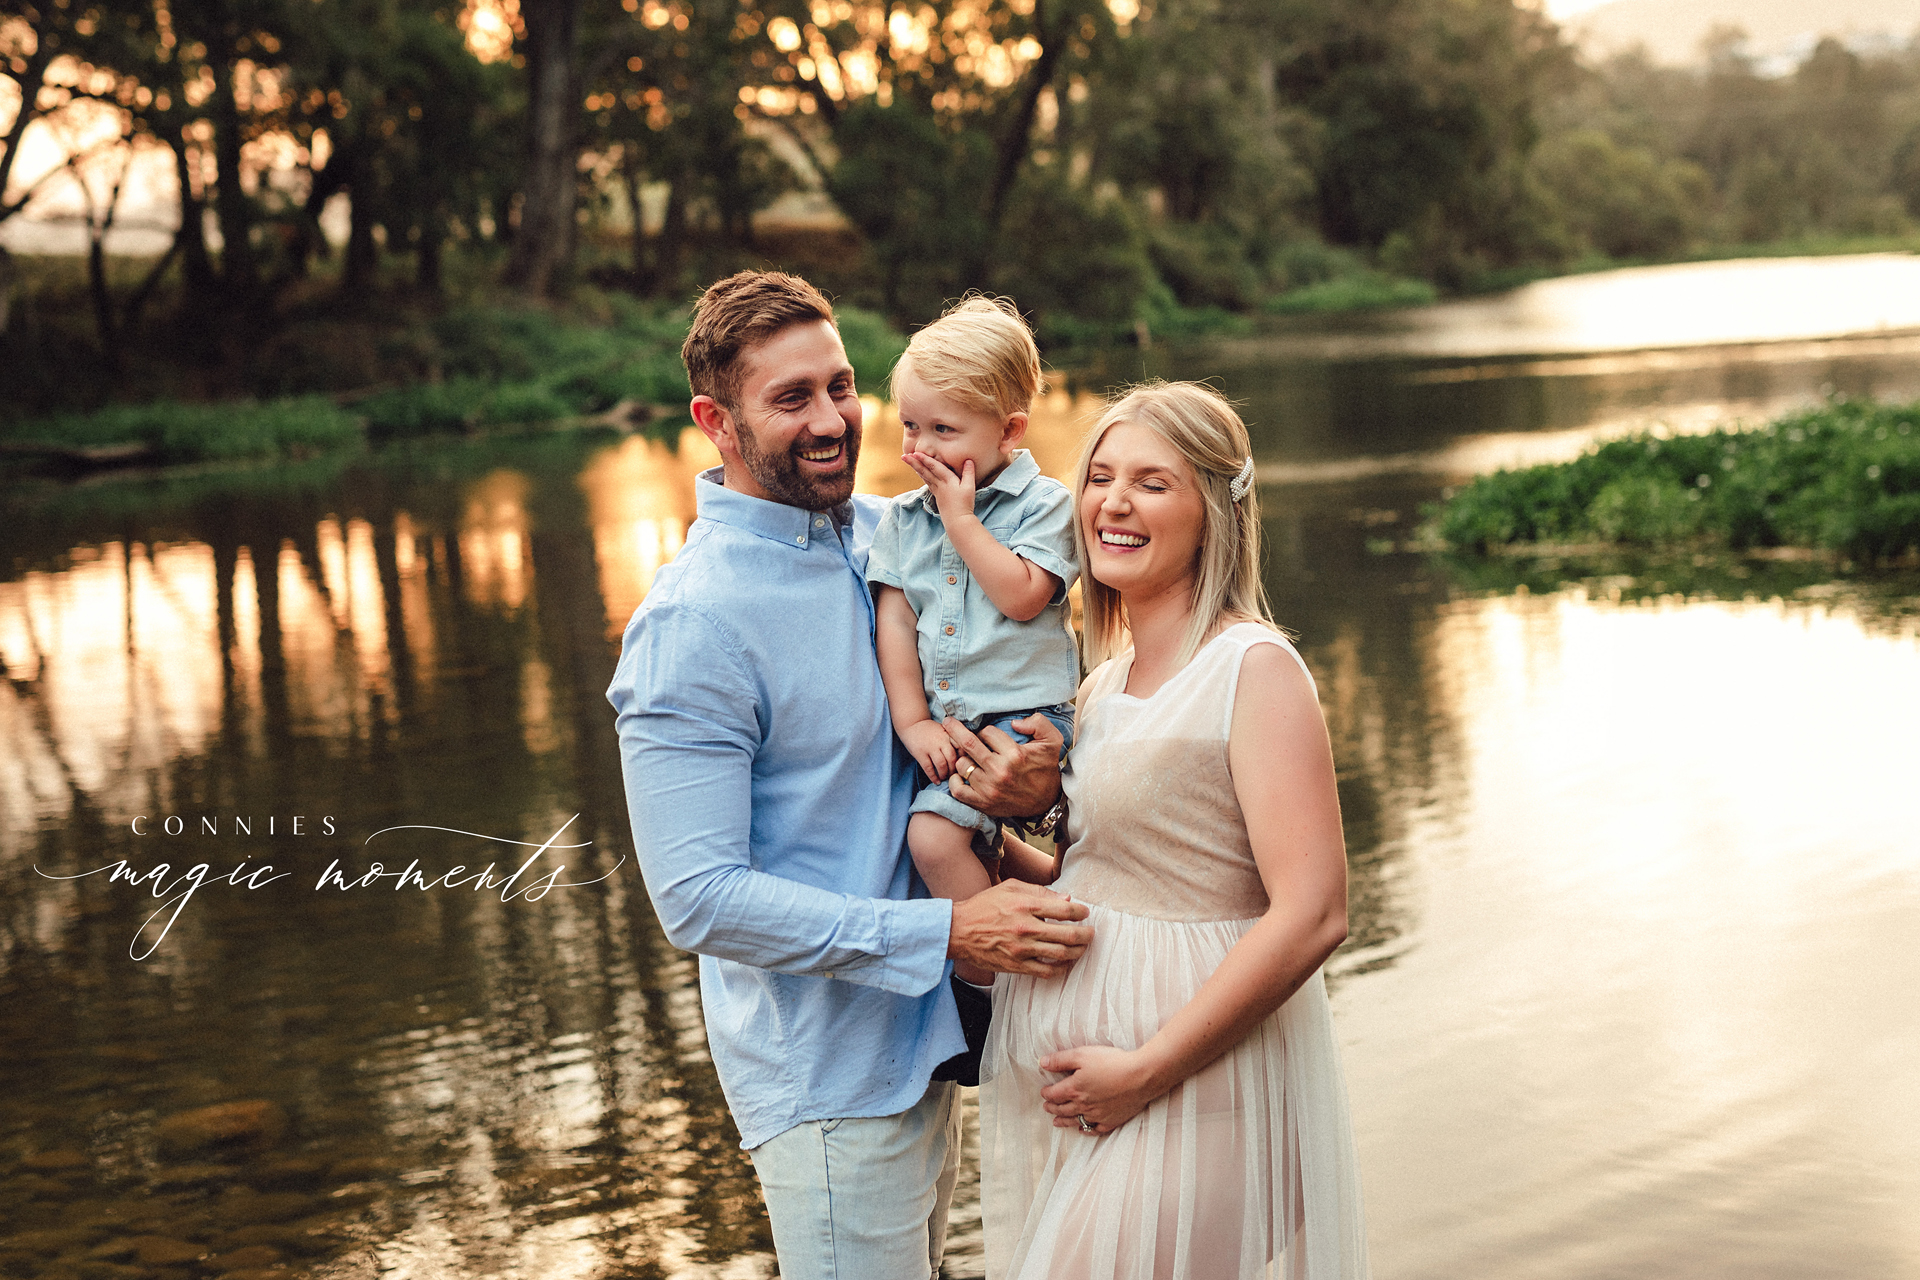 connie's magic moments, maternity newborn photographer helensvale